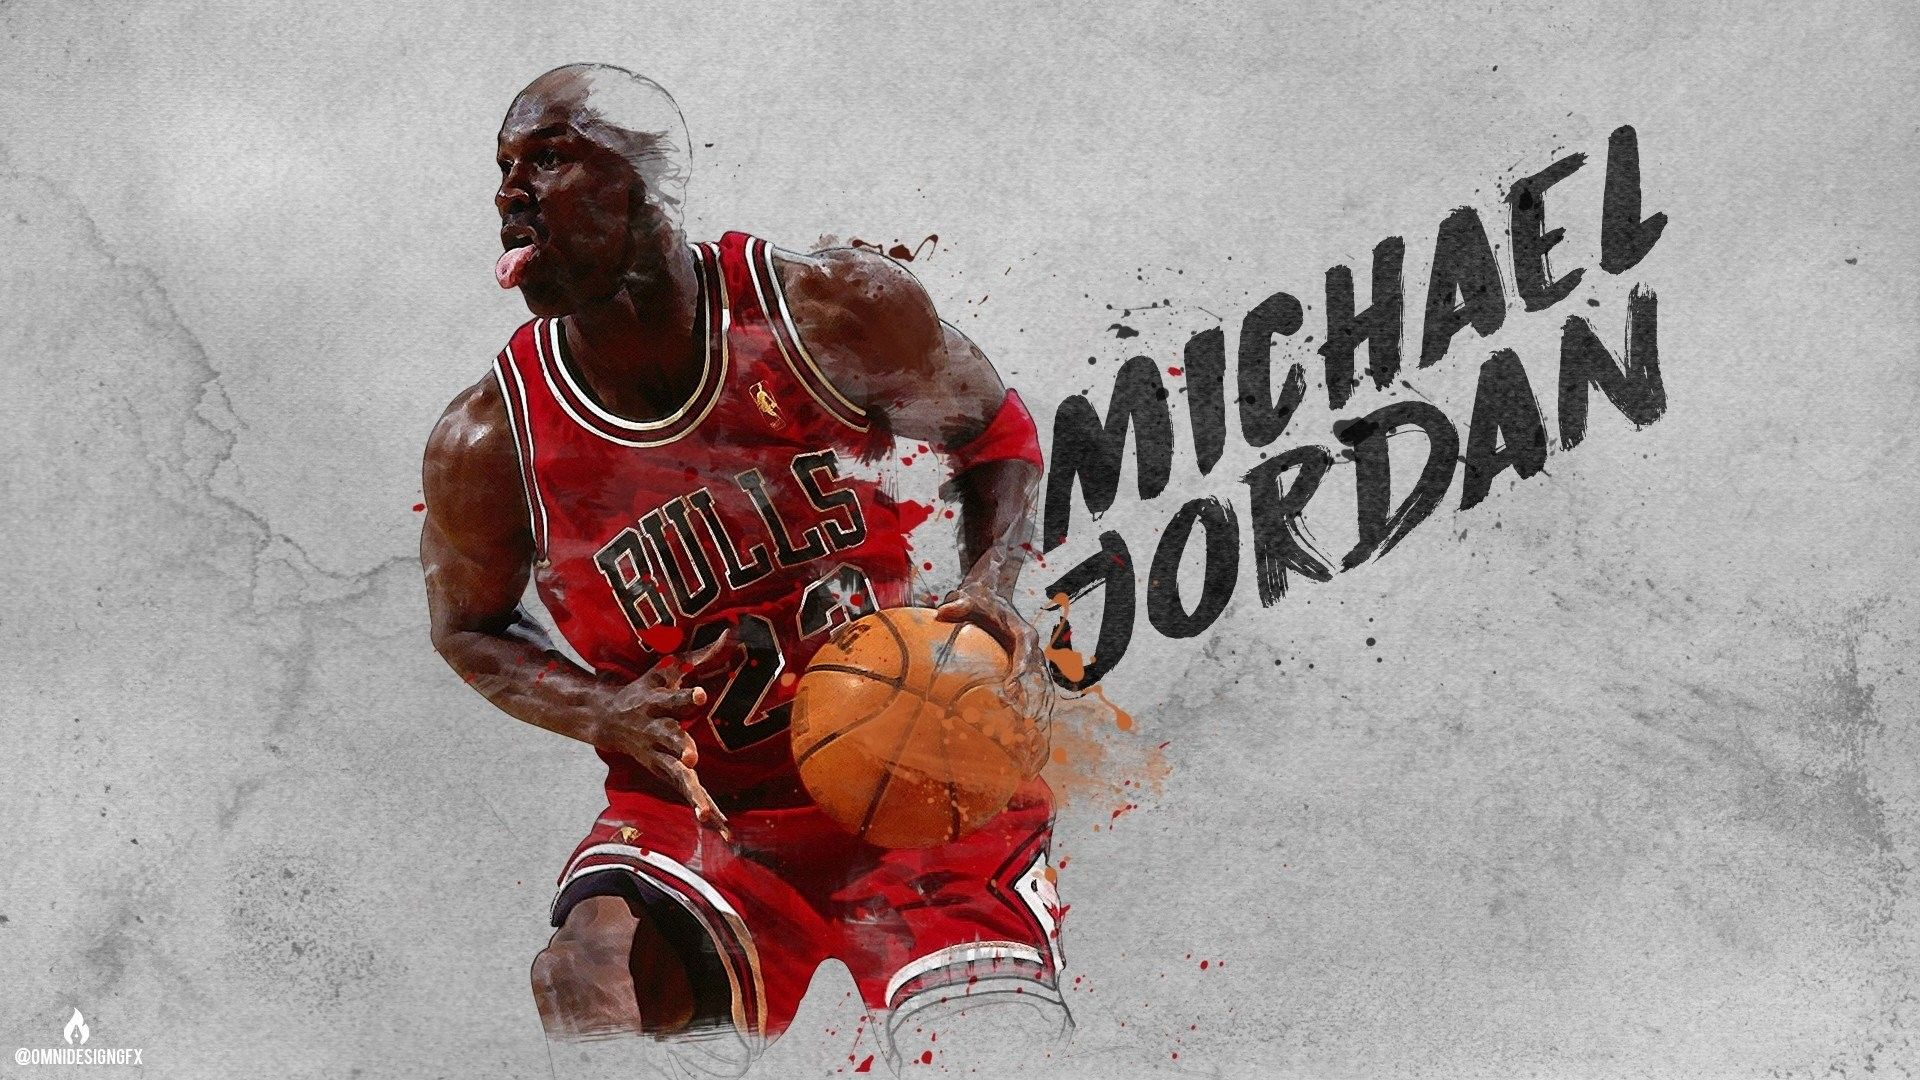 Michael Jordan Hd Wallpapers Top Free Michael Jordan Hd Backgrounds Wallpaperaccess